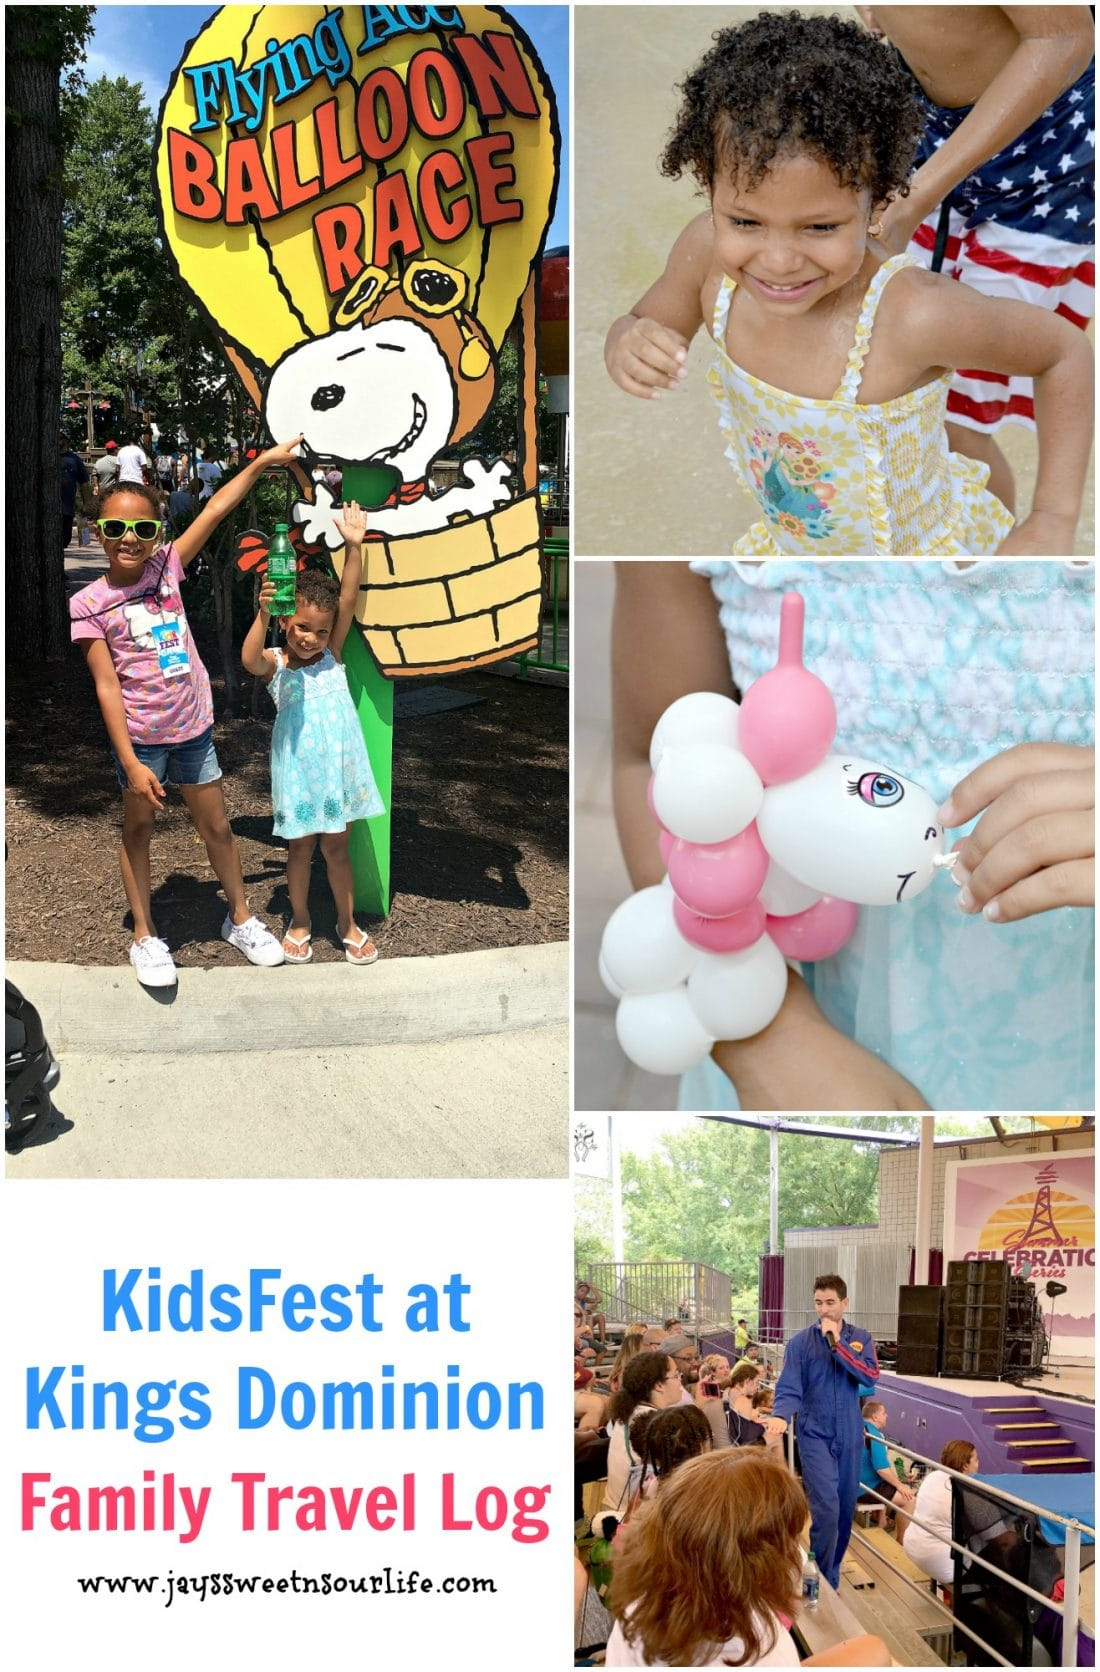 kidsfest-shareable